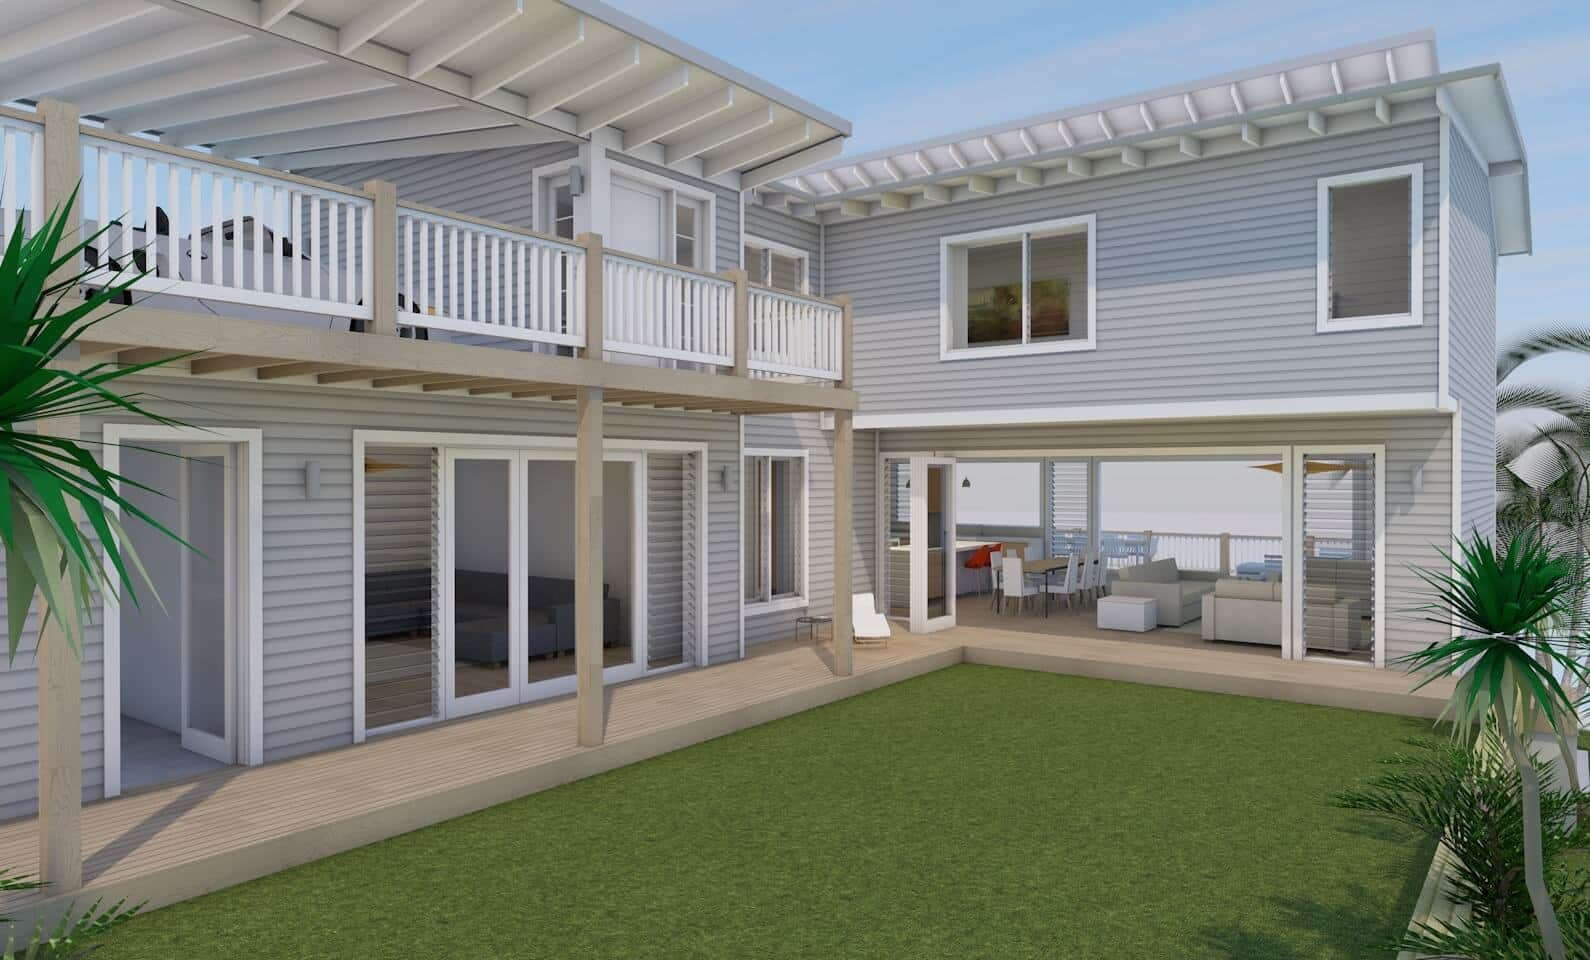 Beach House Freshwater - Courtyard View - New home concept in 3D ...